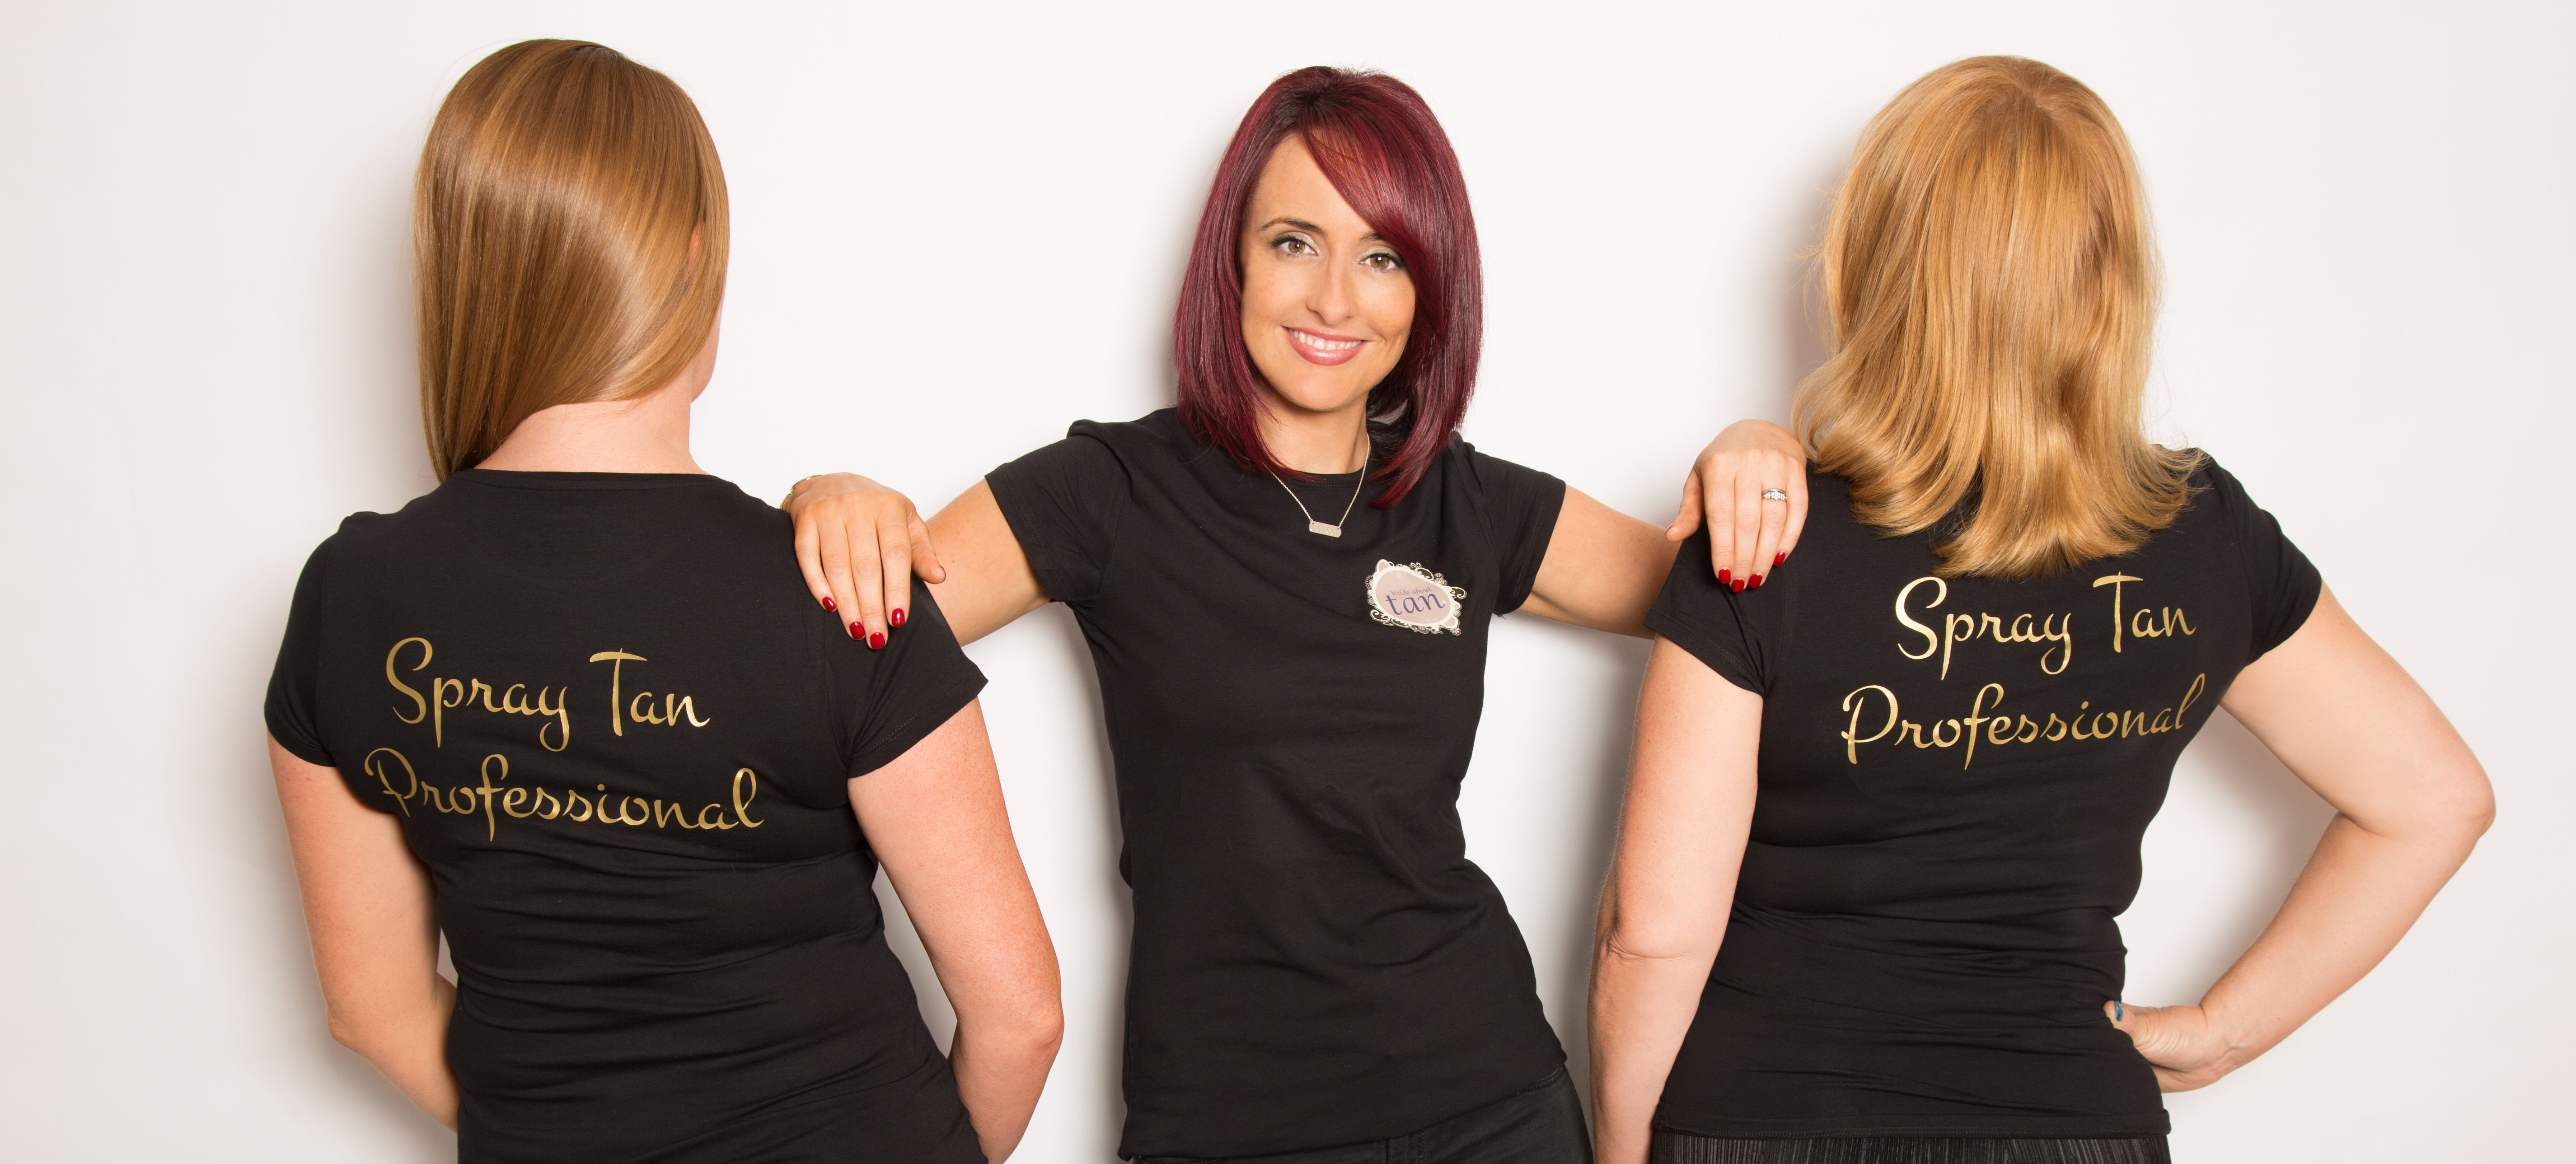 Spray Tan Professionals, copyright Ursula Kelly Photography